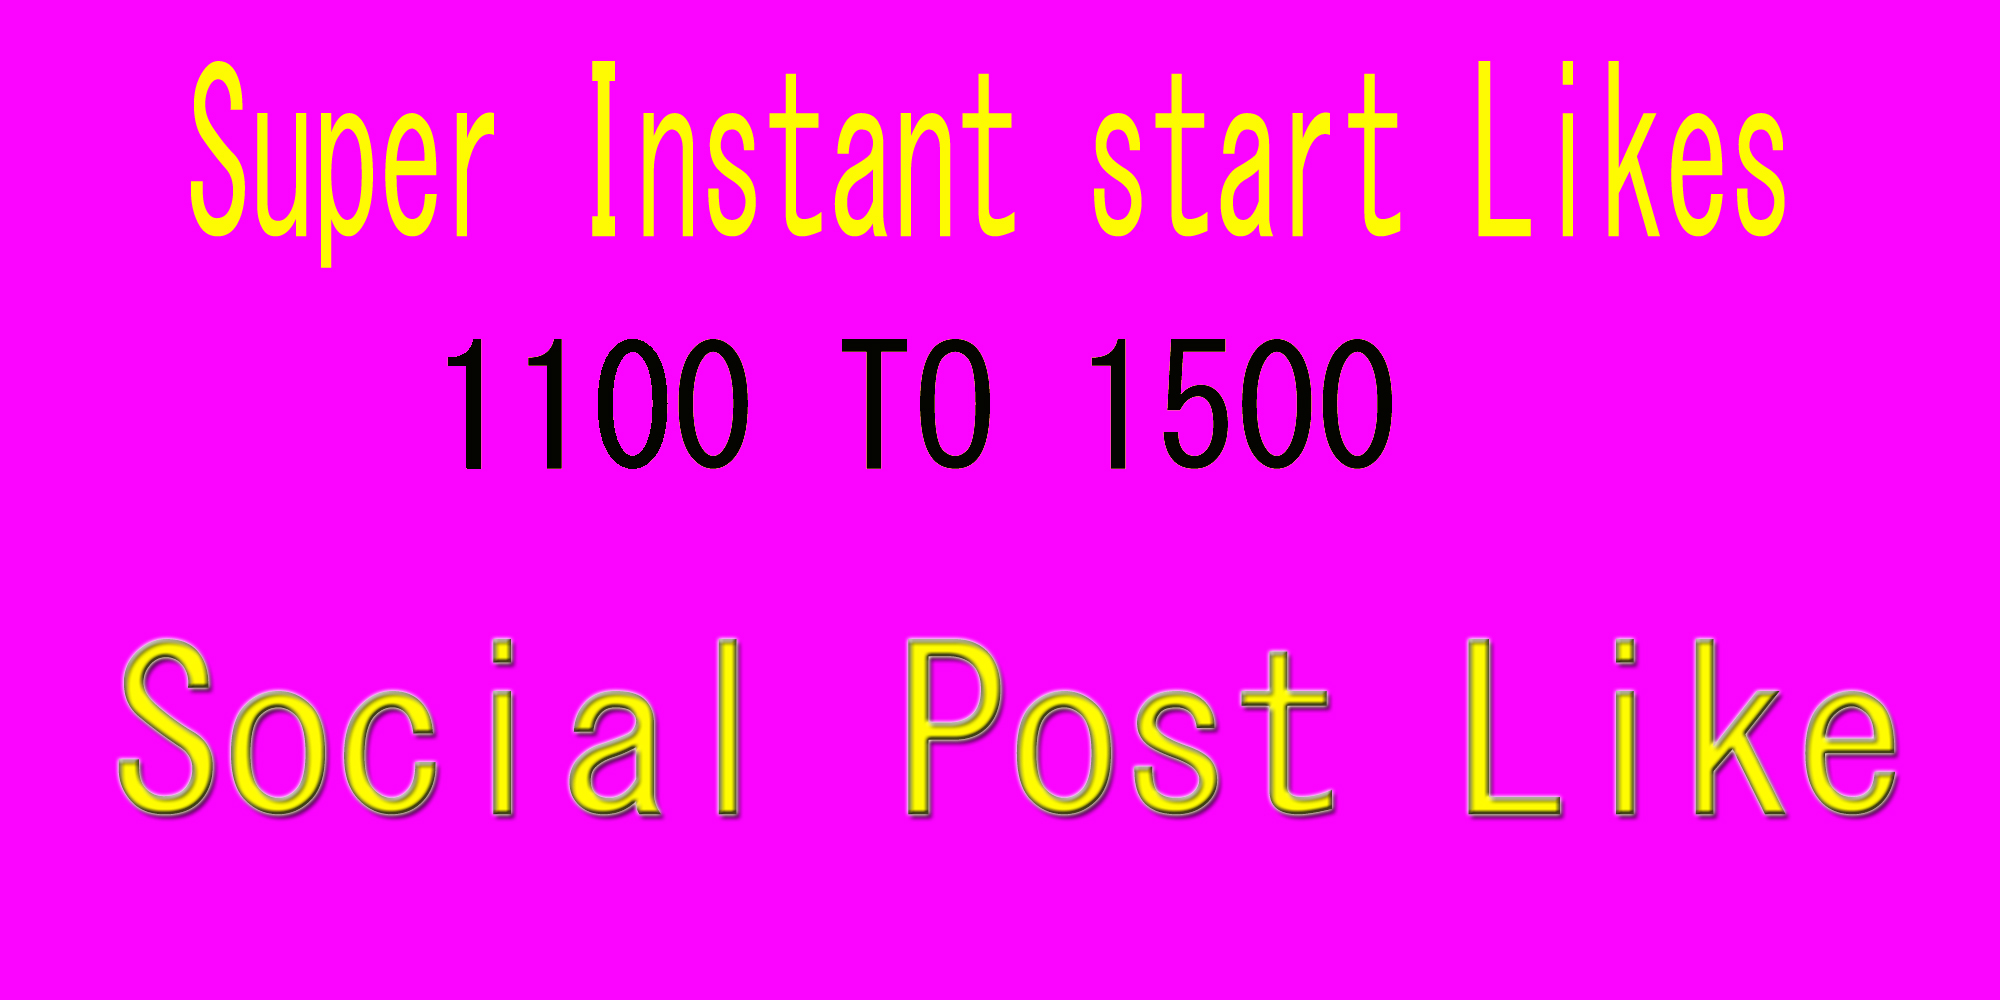 Instant 1000 to 1500 Social Pictures Promotion, video marketing in 1 hours delivery